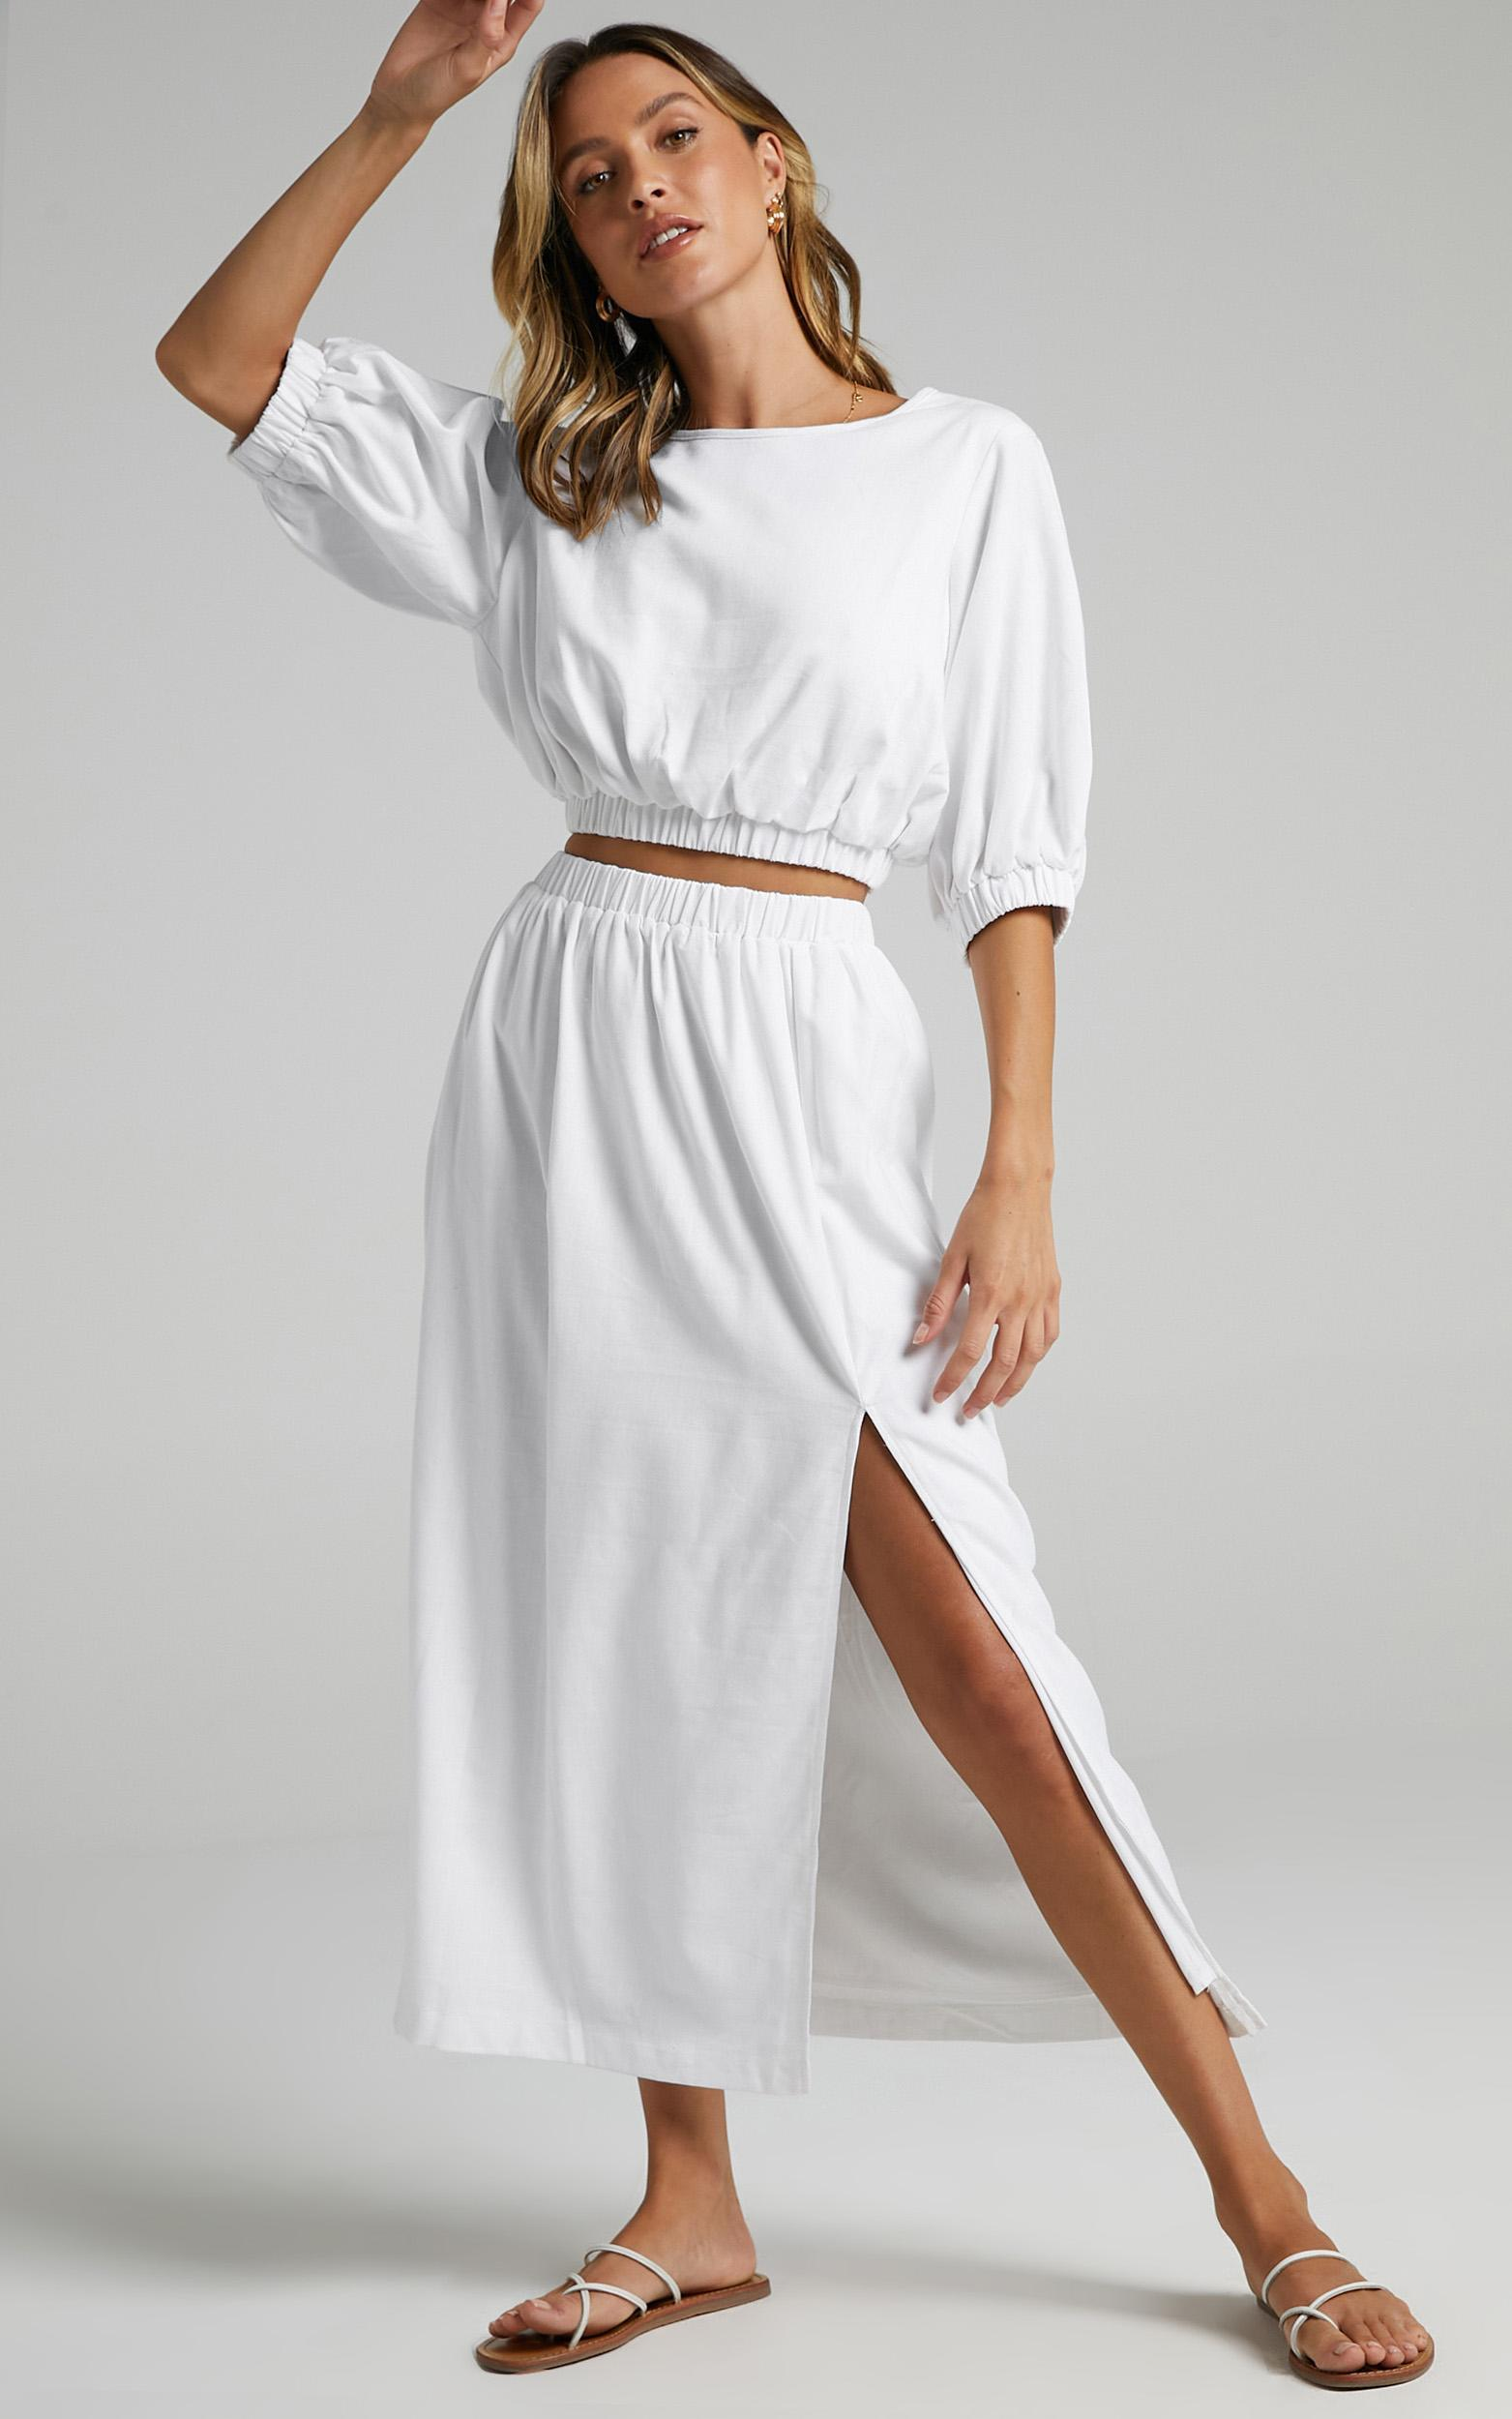 Asta Two Piece set in White - 06, WHT6, hi-res image number null